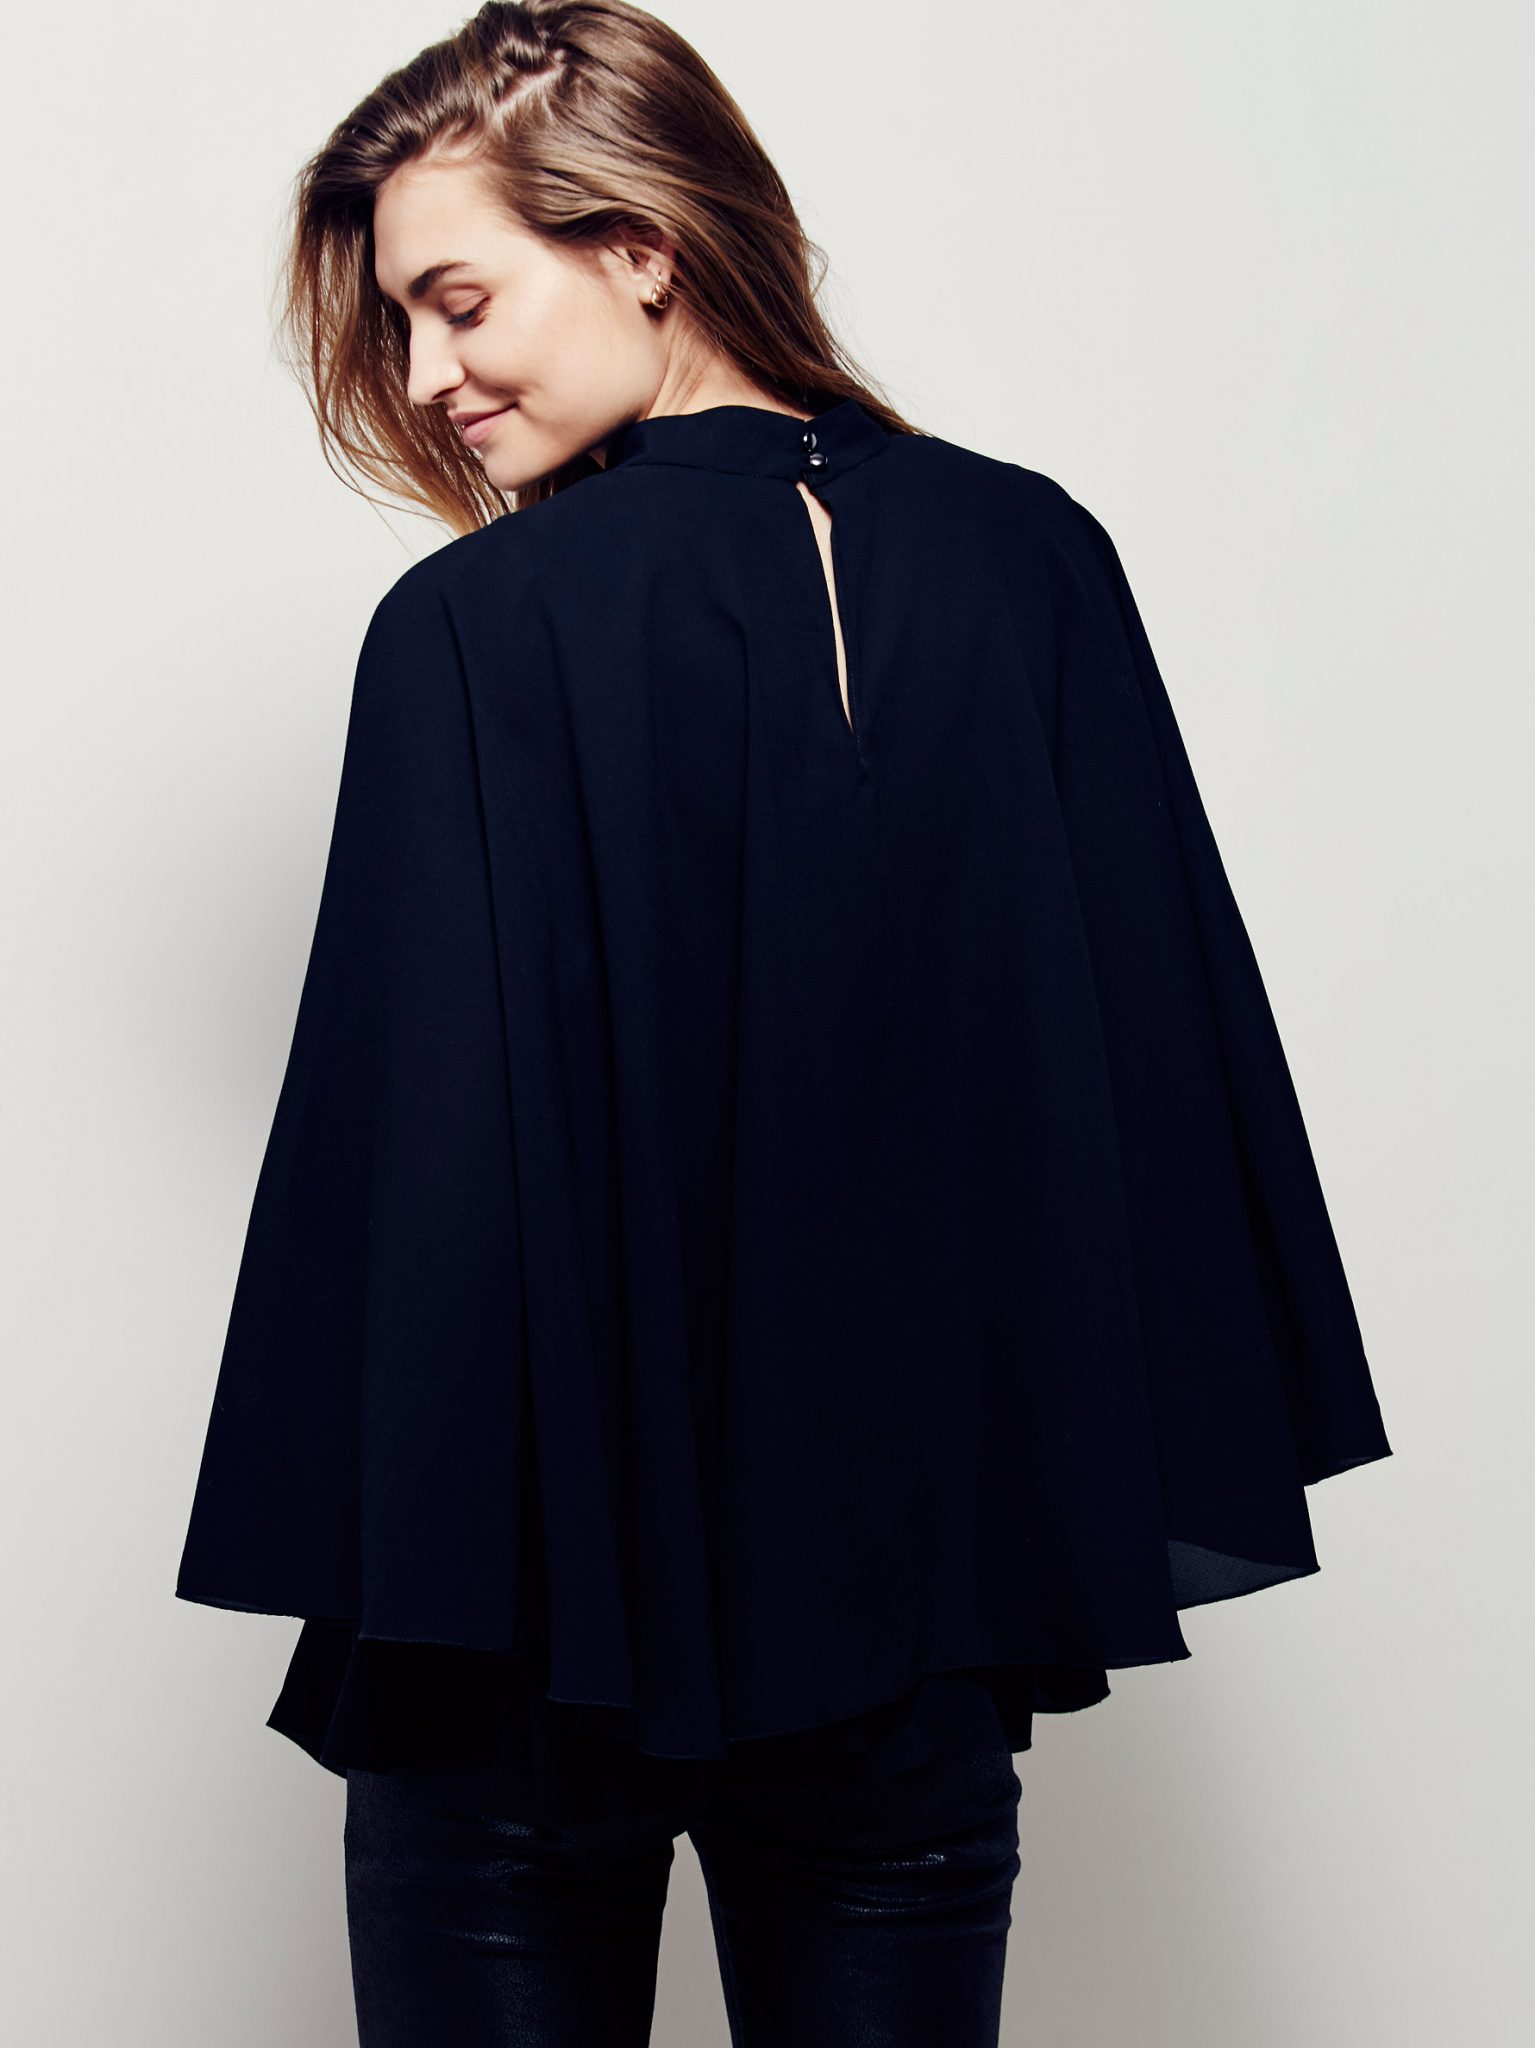 best-friday-dressing-women's-work-clothes-outfit-ideas-cape-tunic-Black